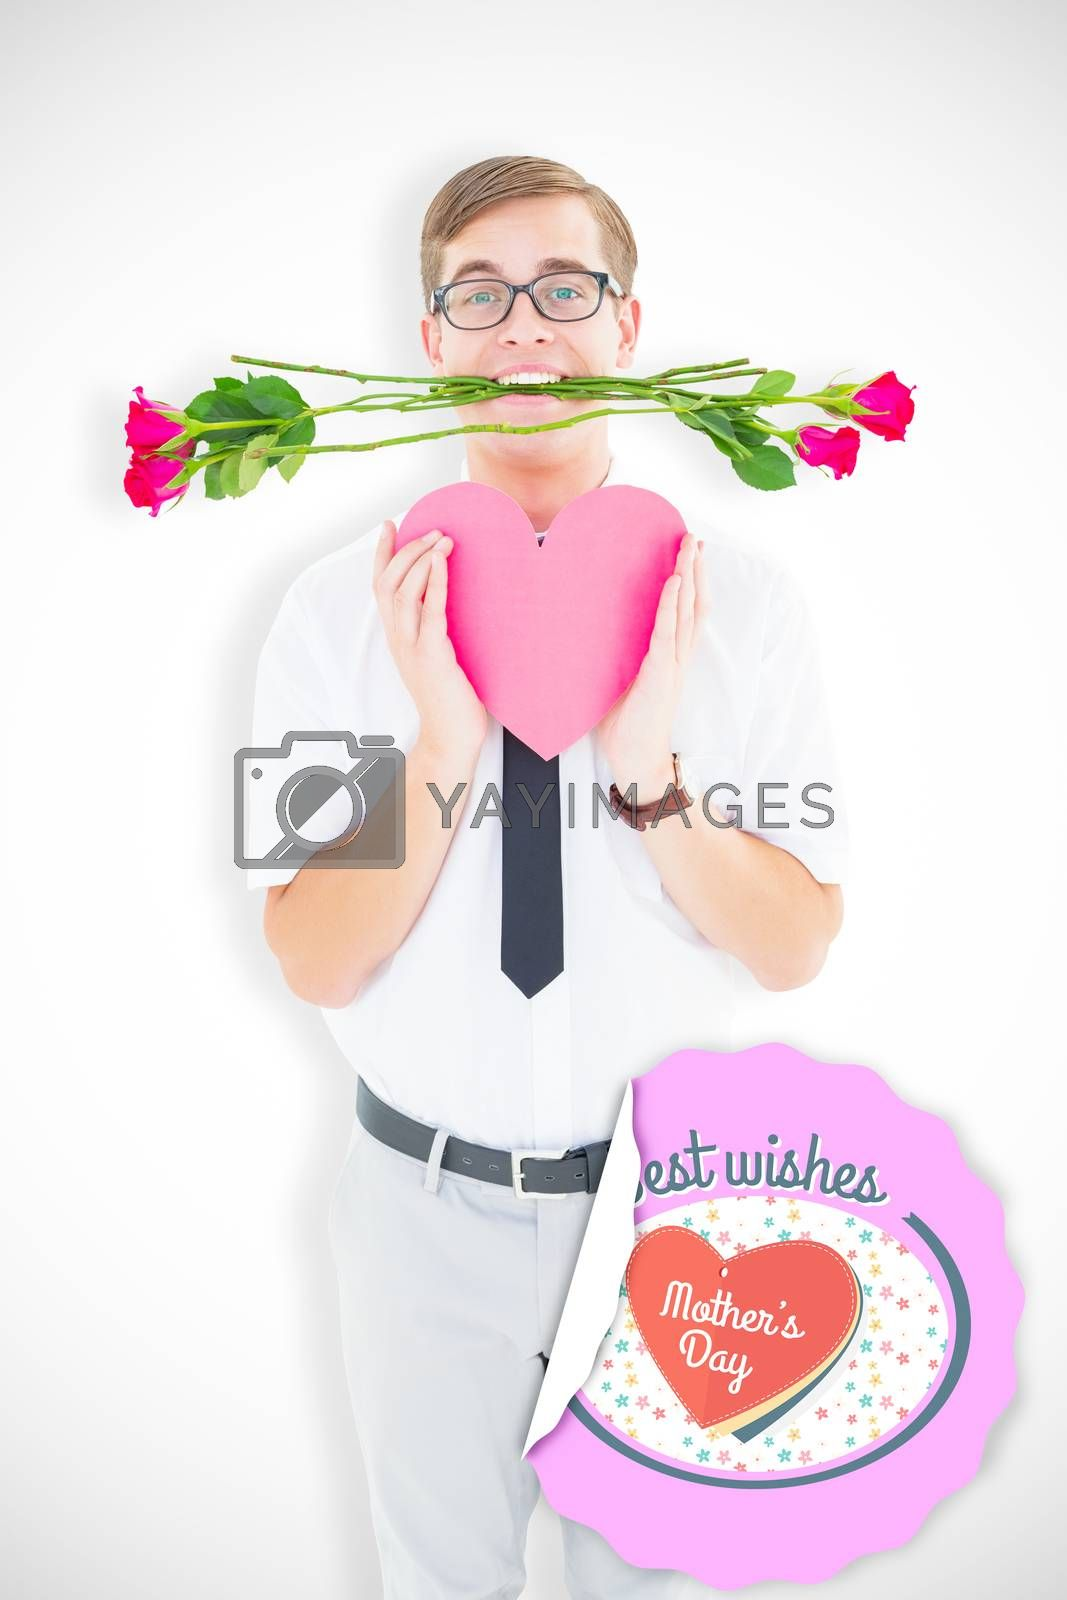 Geeky hipster holding red roses and heart card against mothers day greeting